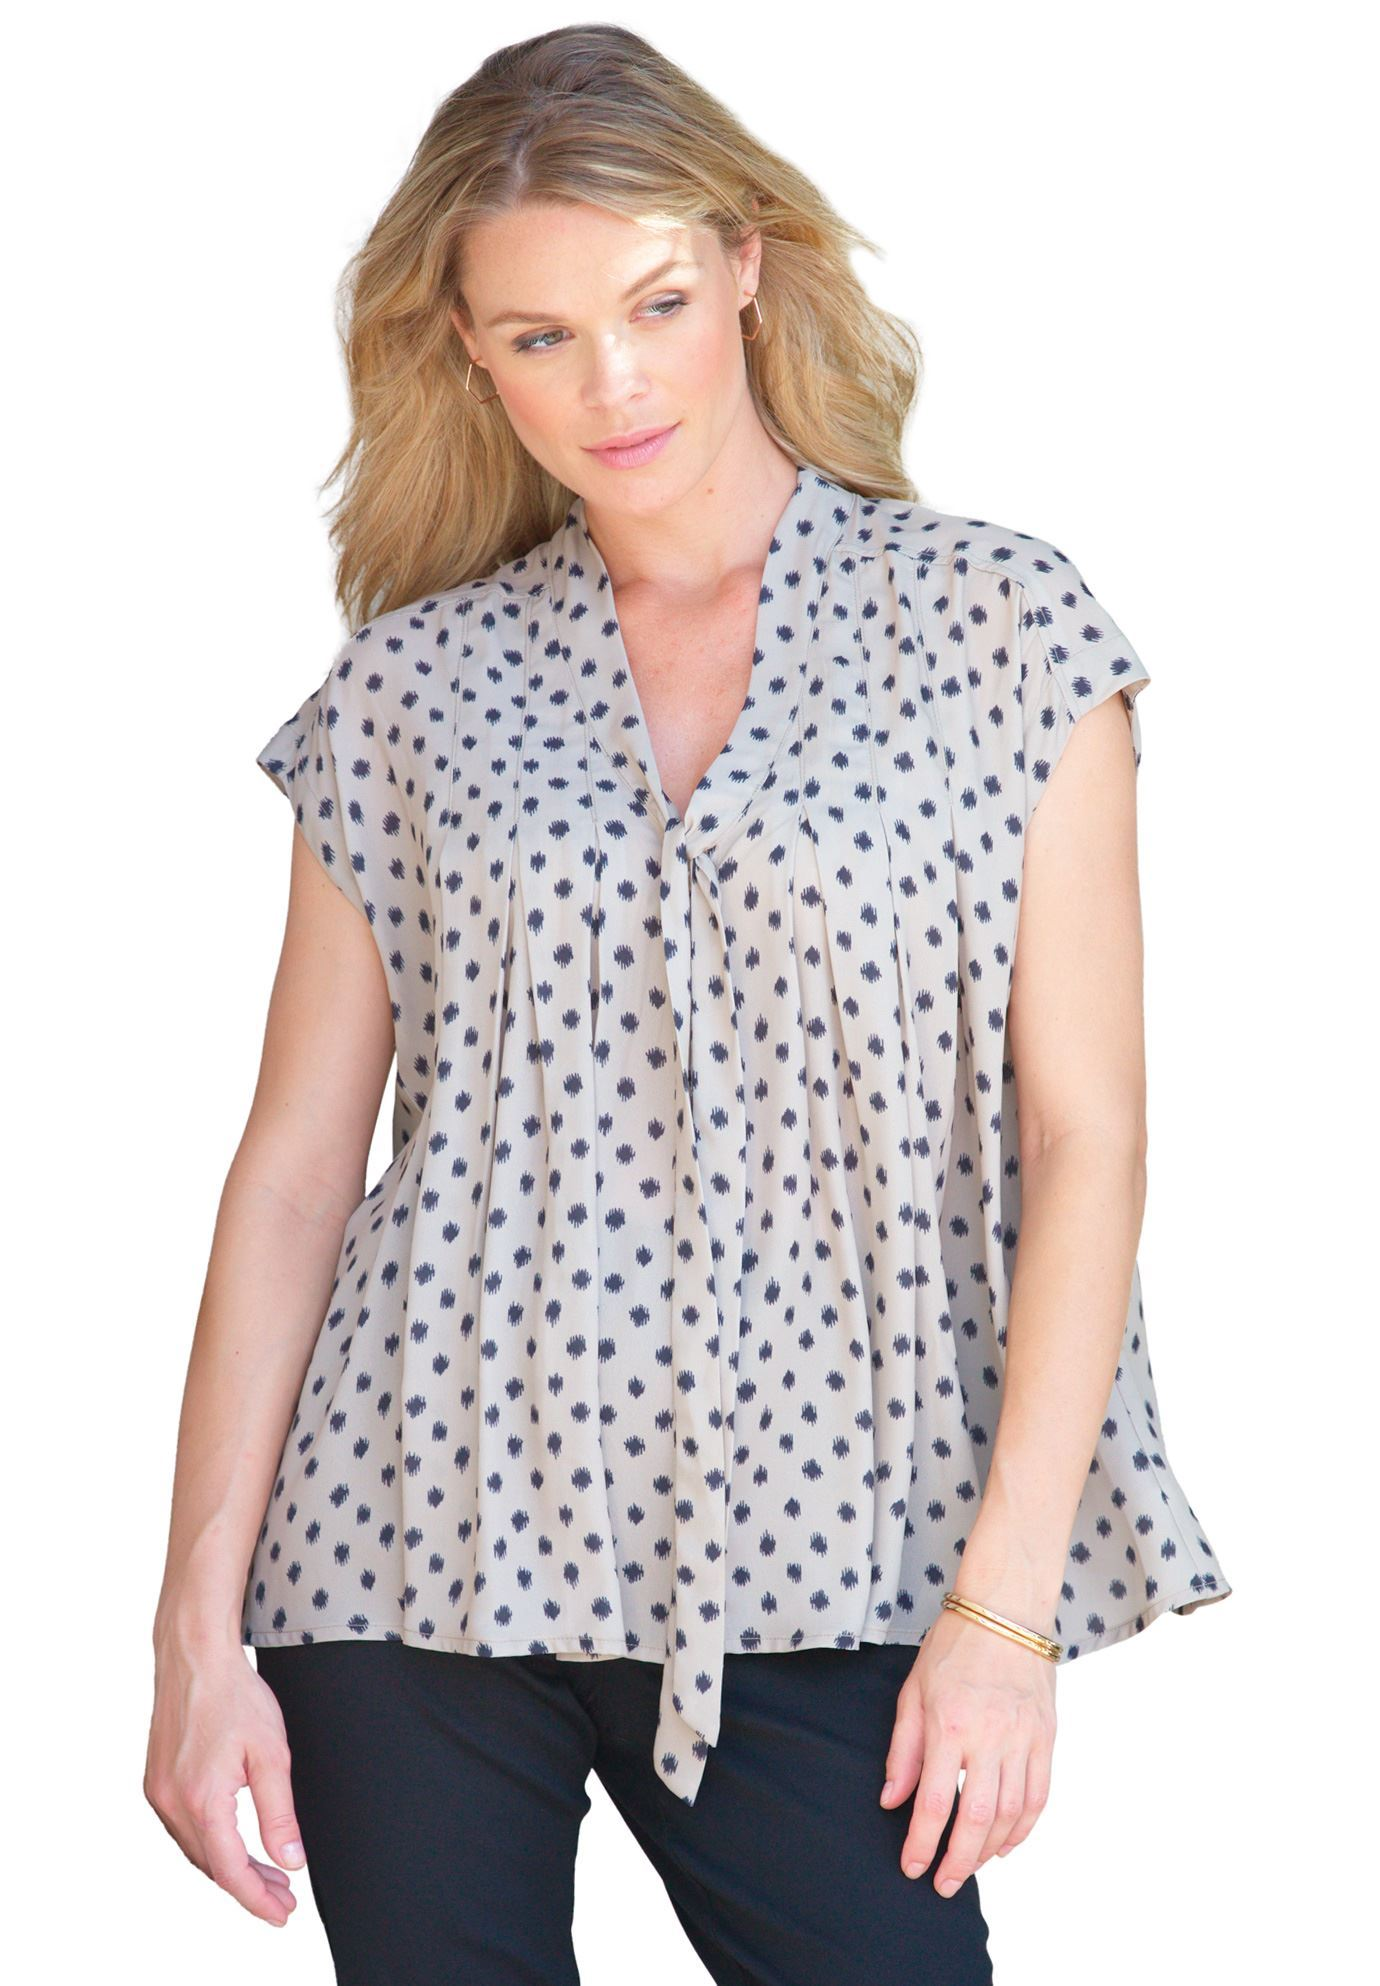 Evie Print V-Neck Top,